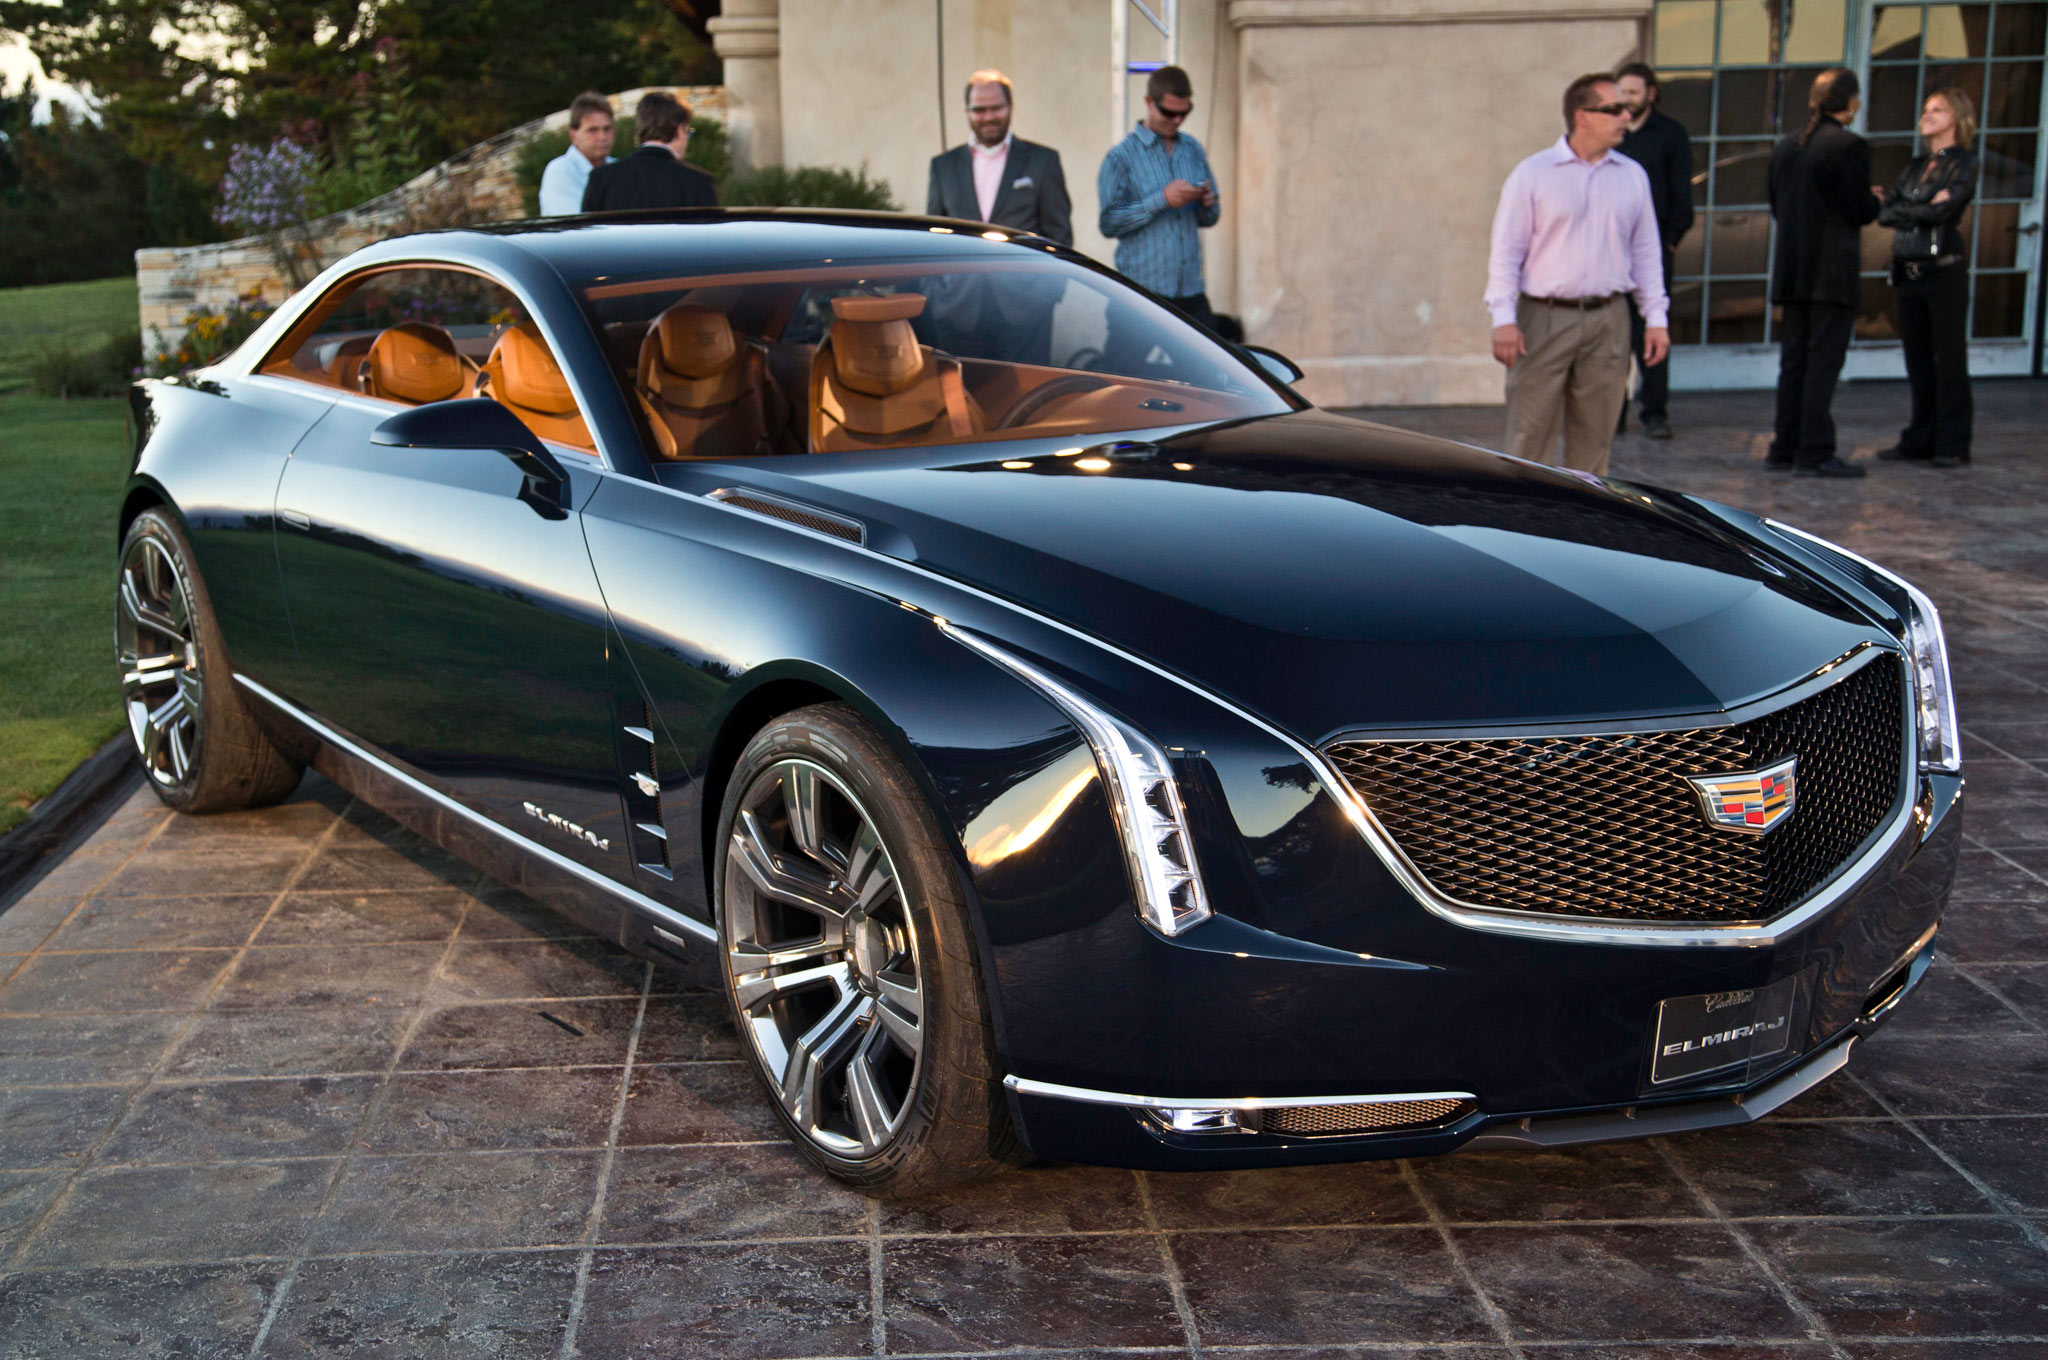 limos review watch entering luxury of new cadillac the class